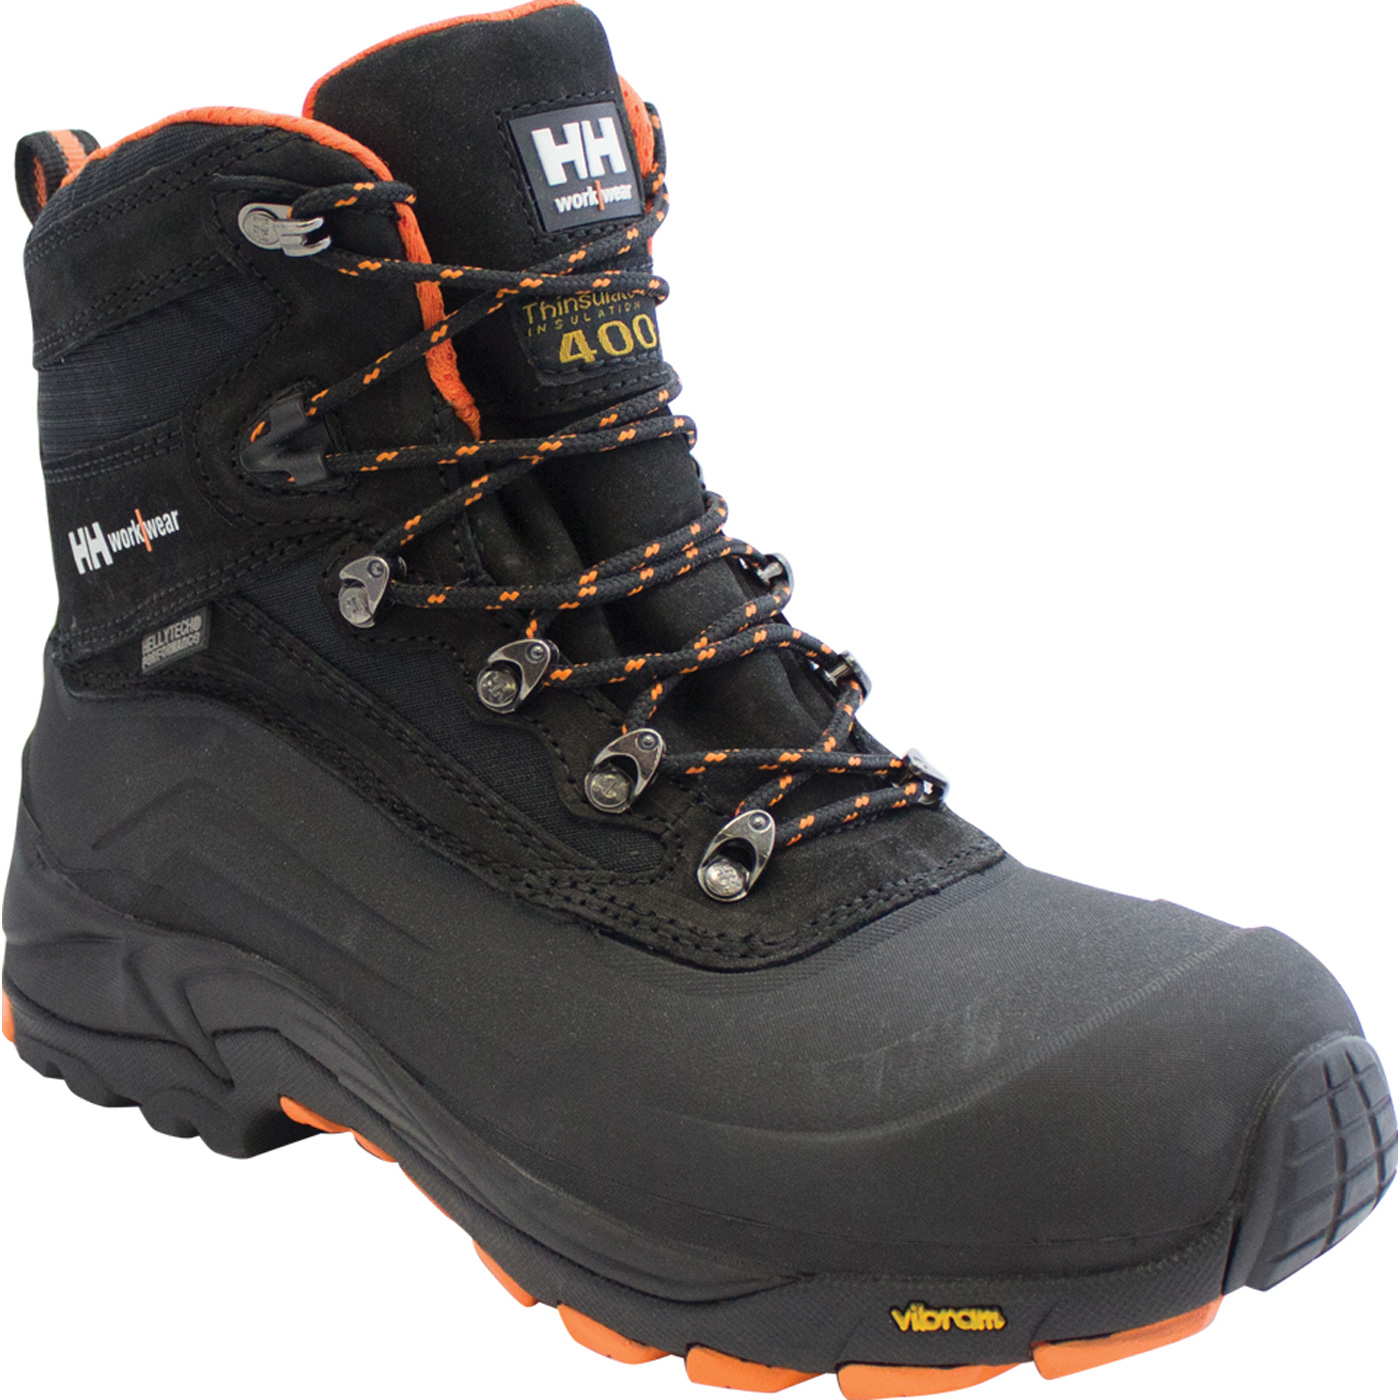 the latest 46815 bcf8e Helly Hansen Norway Men's 6 inch Insulated Composite Toe Electrical Hazard  Waterproof Work Boot